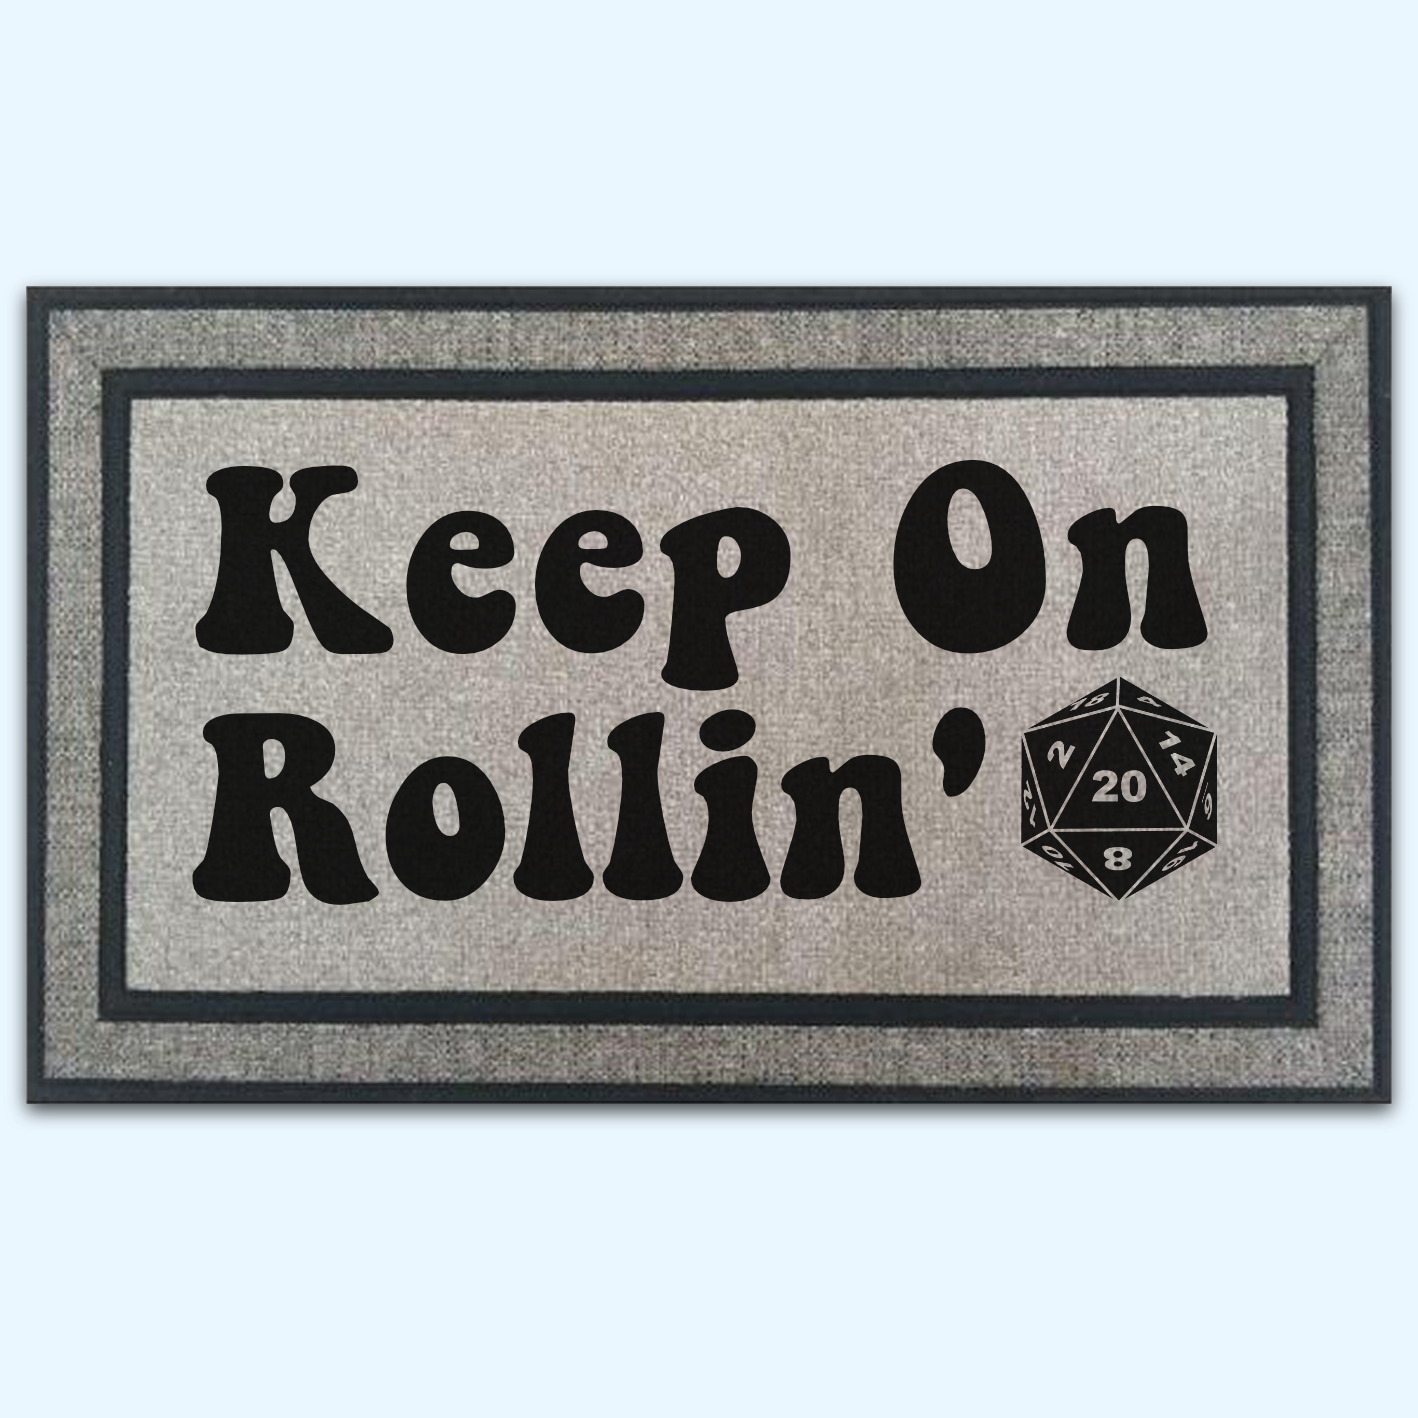 Keep On Rollin' Fantasy Game Door Mat